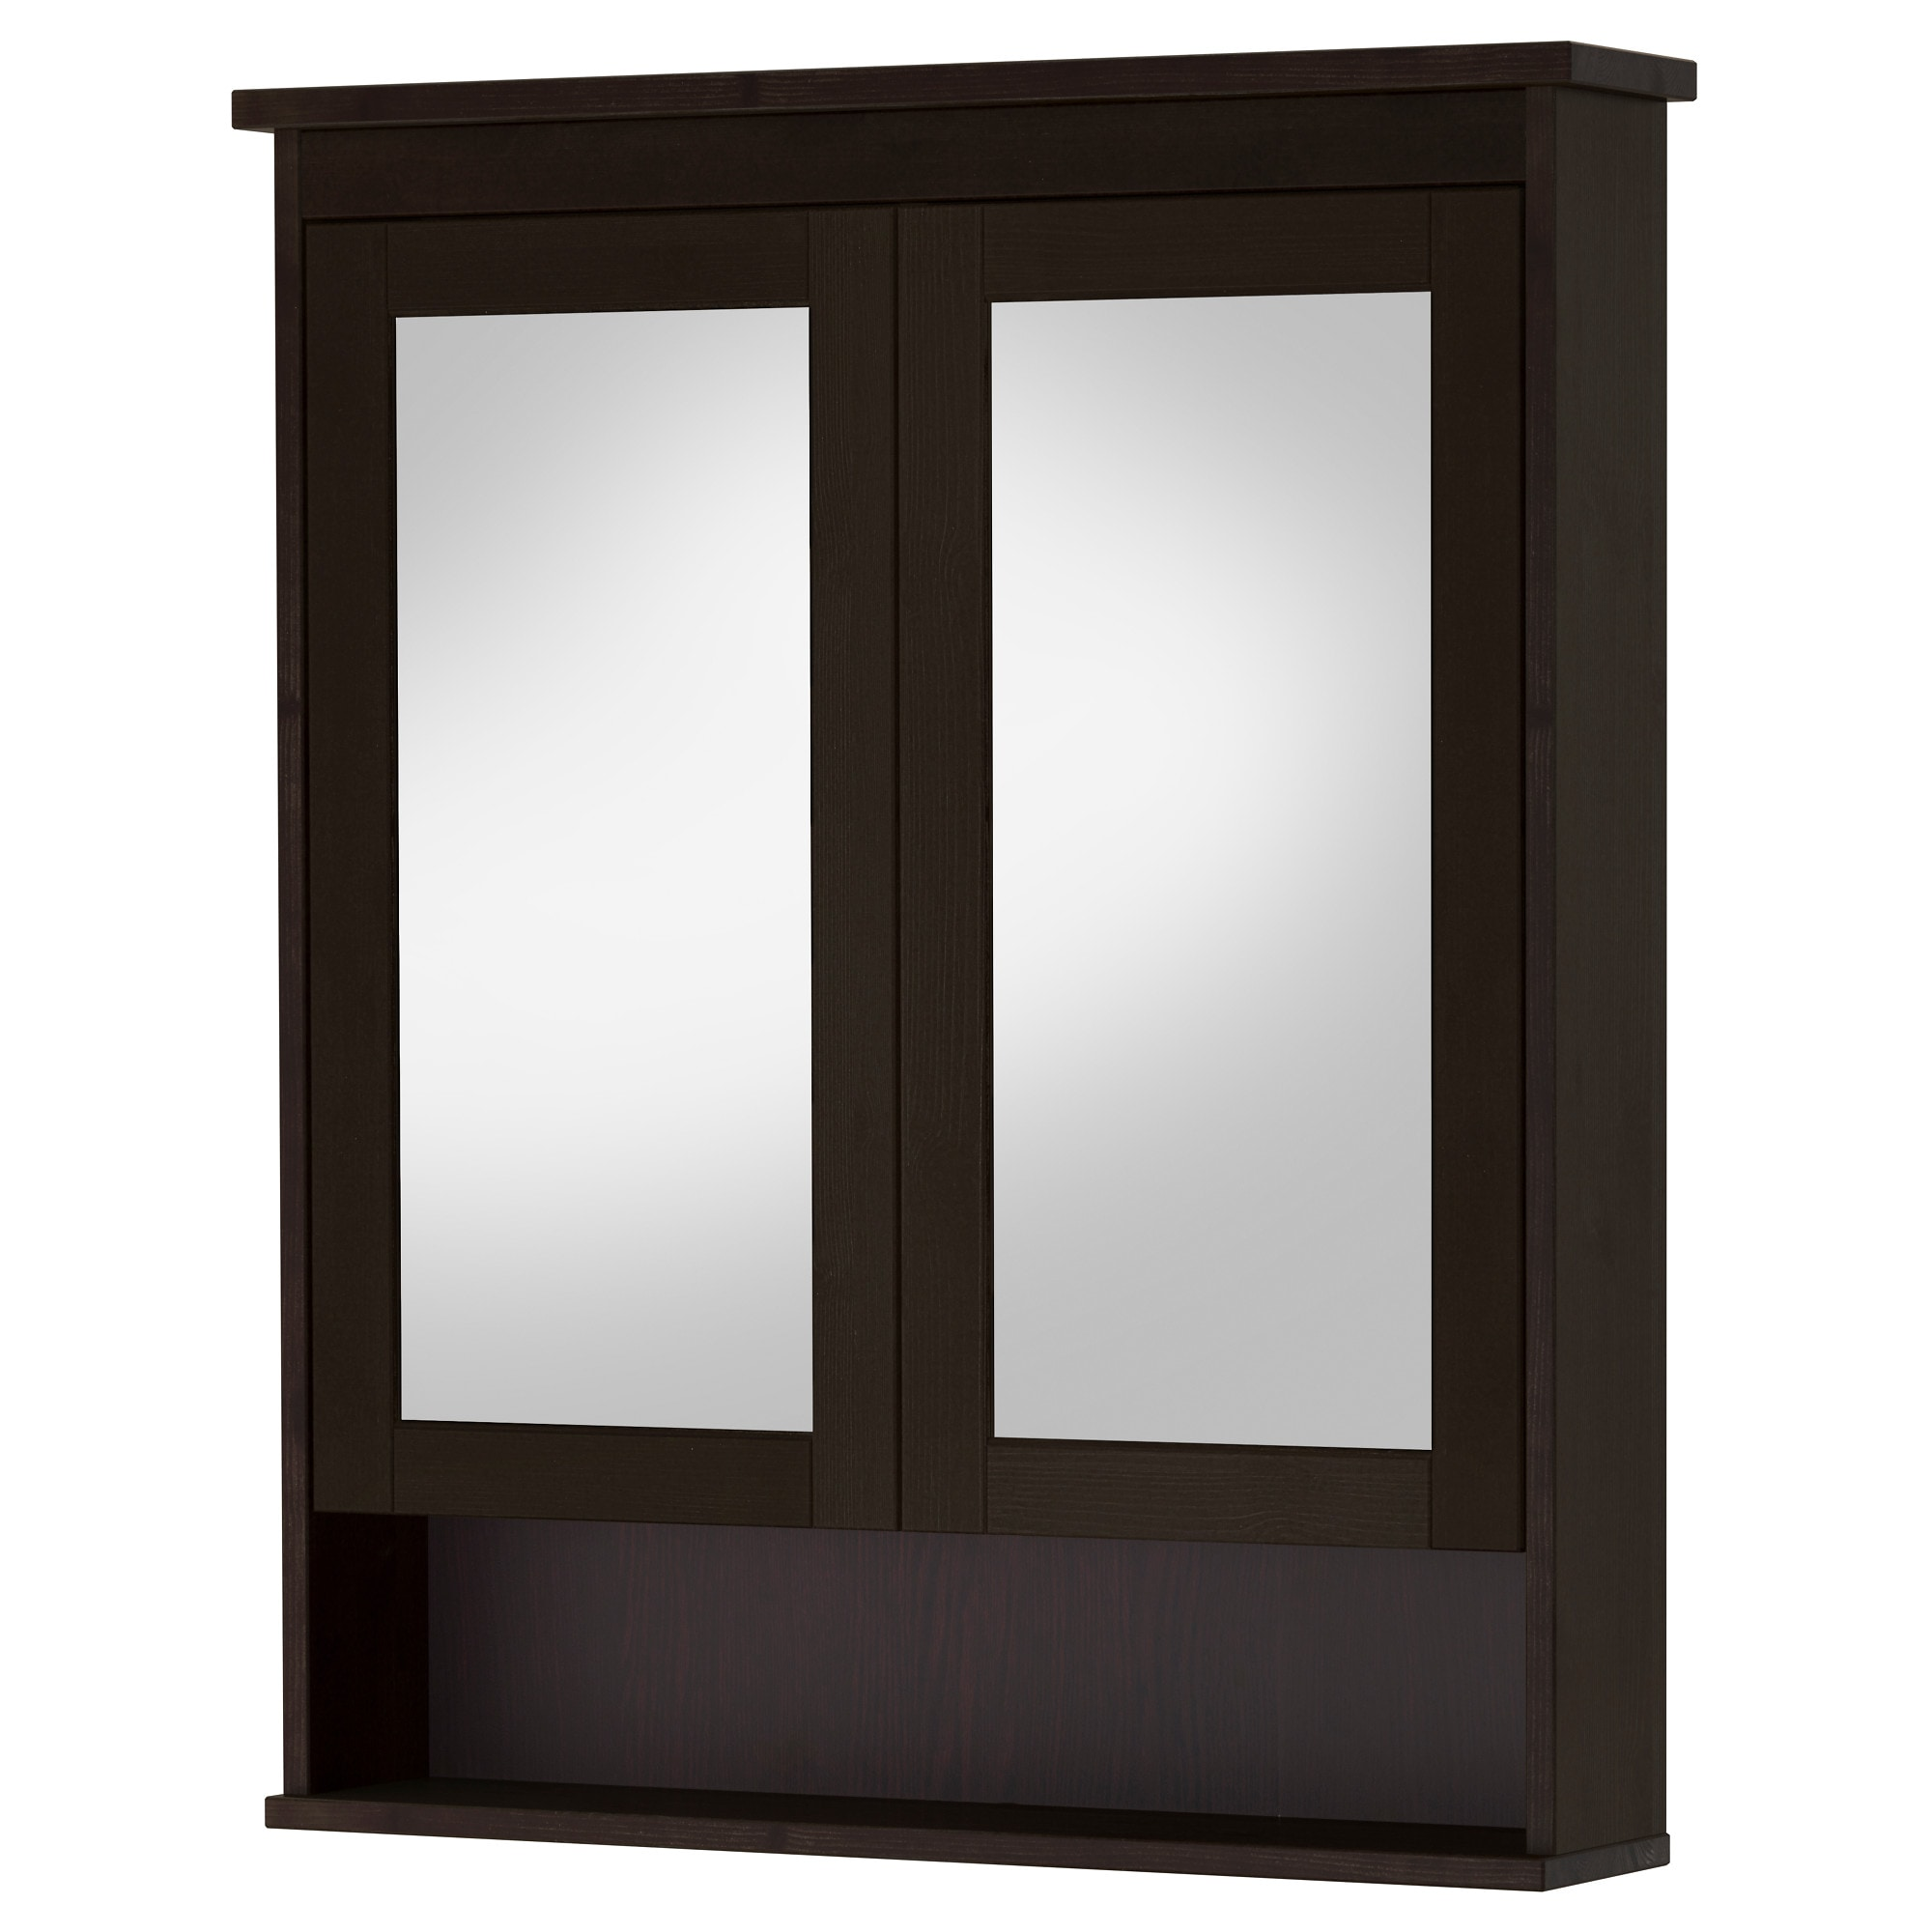 hemnes mirror cabinet with  doors  blackbrown stain xx  - hemnes mirror cabinet with  doors  blackbrown stain xx cm  ikea